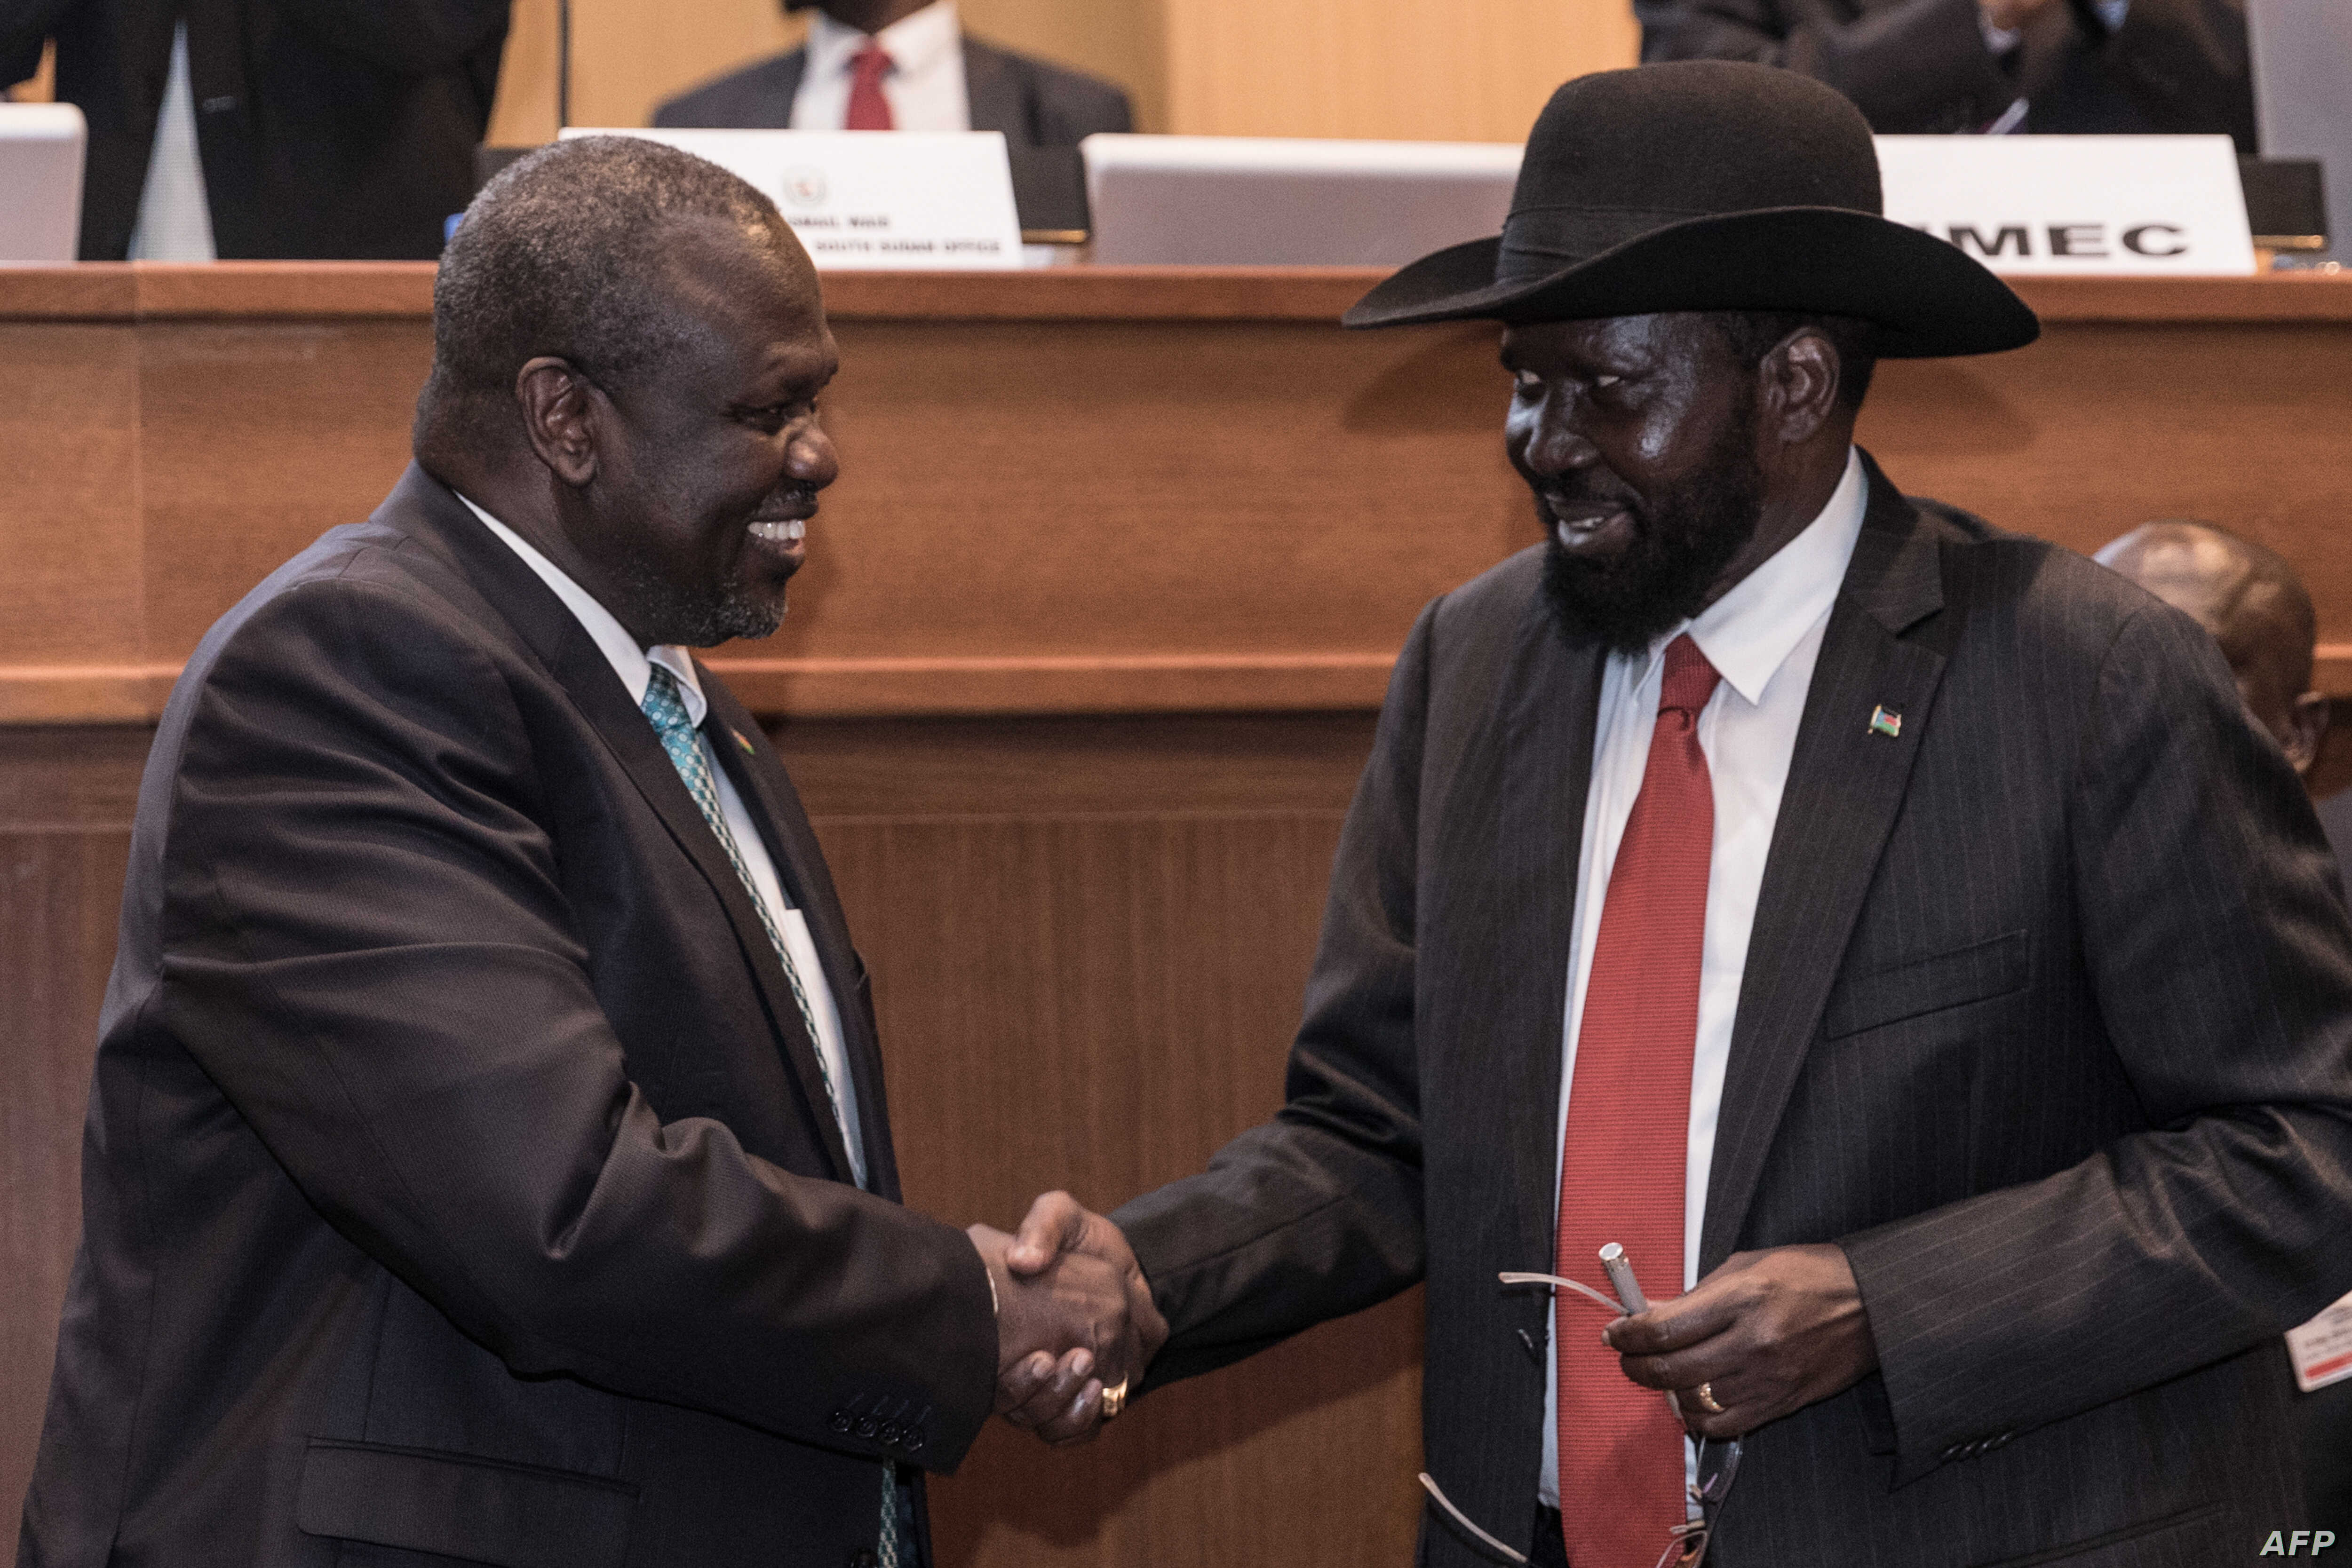 South Sudan's President Salva Kiir, right, and his former deputy turned rebel leader Riek Machar shake hands as they make a last peace deal at the 33rd Extraordinary Summit of Intergovernmental Authority on Development (IGAD) in Addis Ababa on Sept.1...